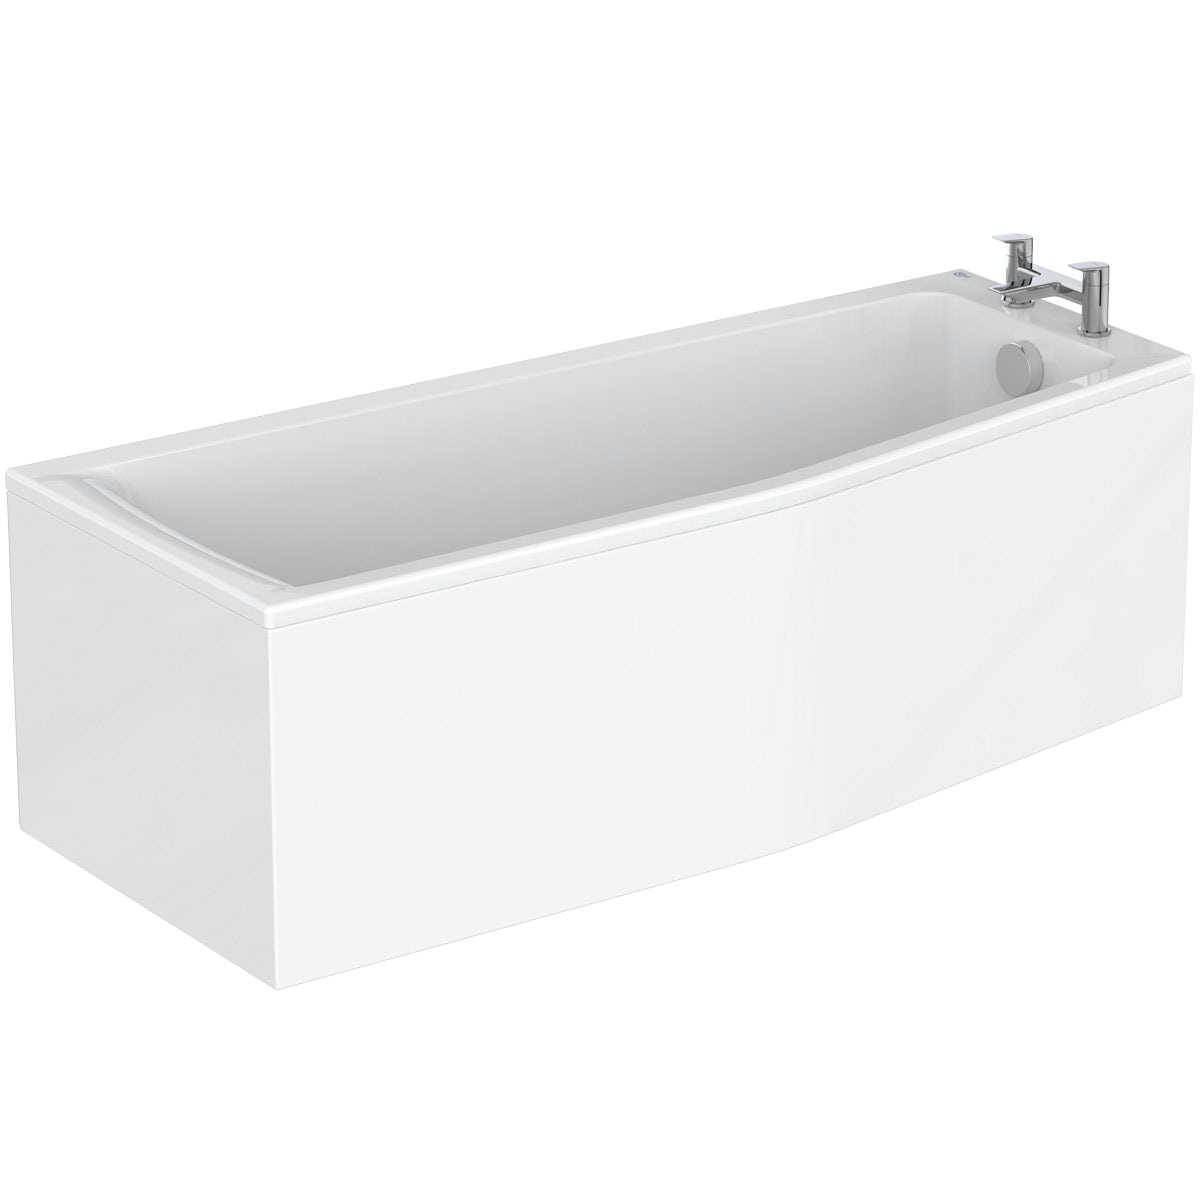 Ideal Standard Concept Space right handed shower bath 1700 x 700